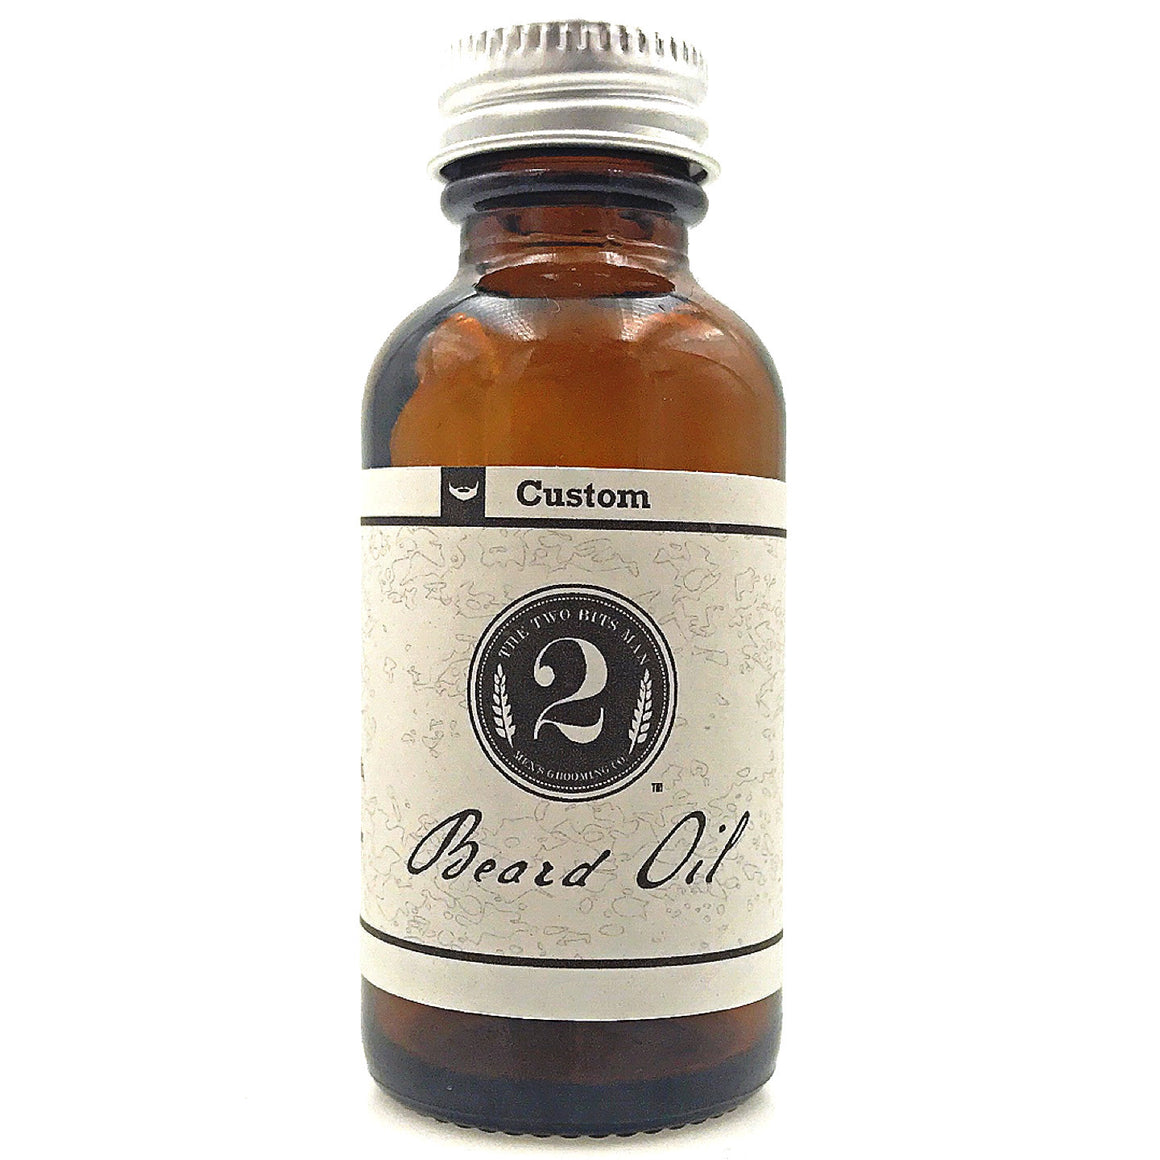 Custom Beard Oil - All Natural